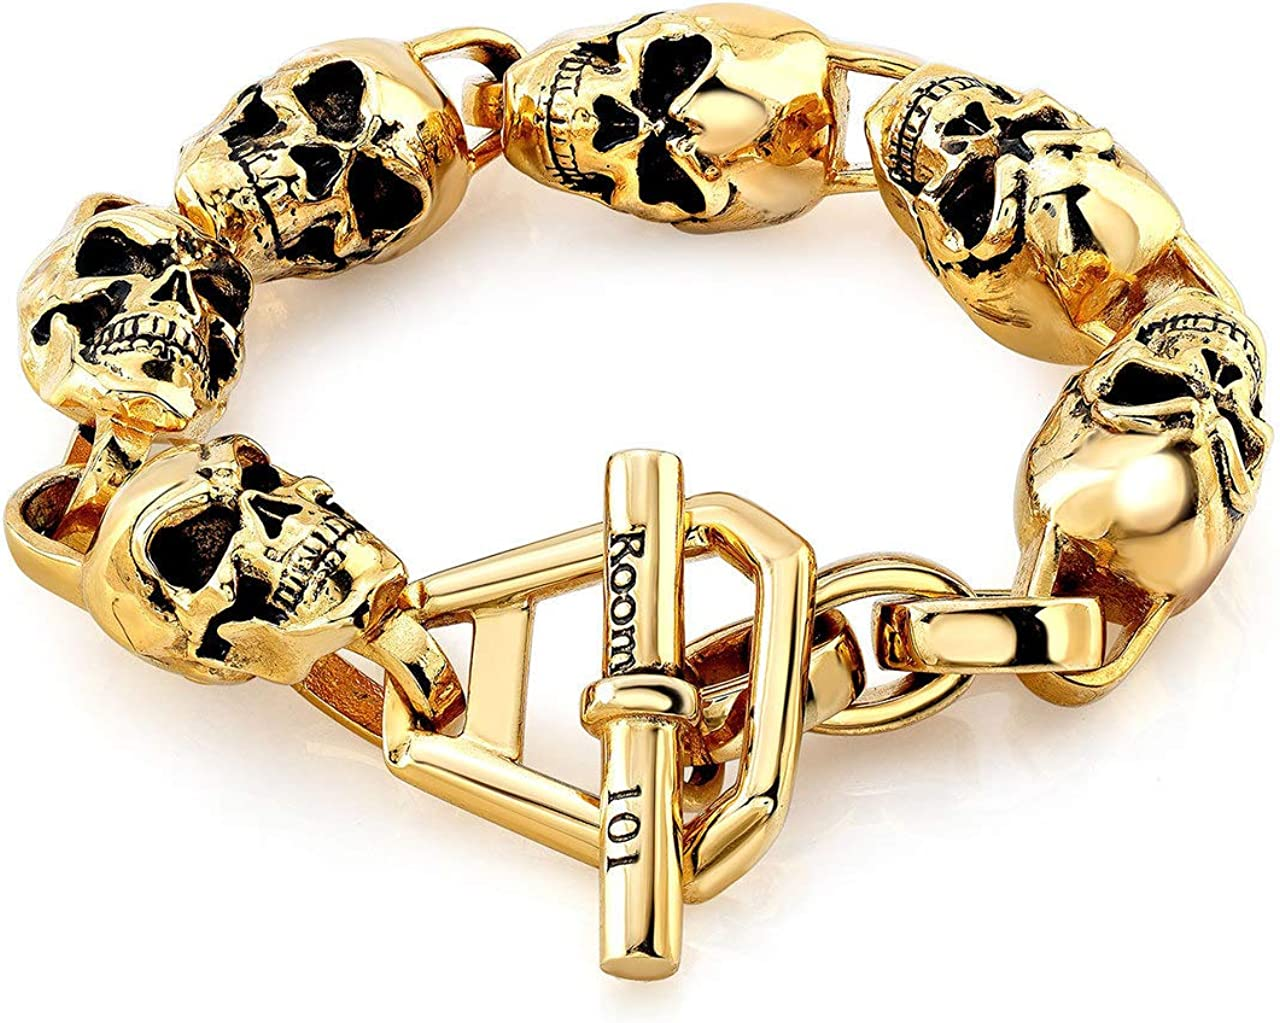 Seasonal Wrap Introduction Super intense SALE Room101 Stainless Steel Skull Link Bracelet - and Choise of Size